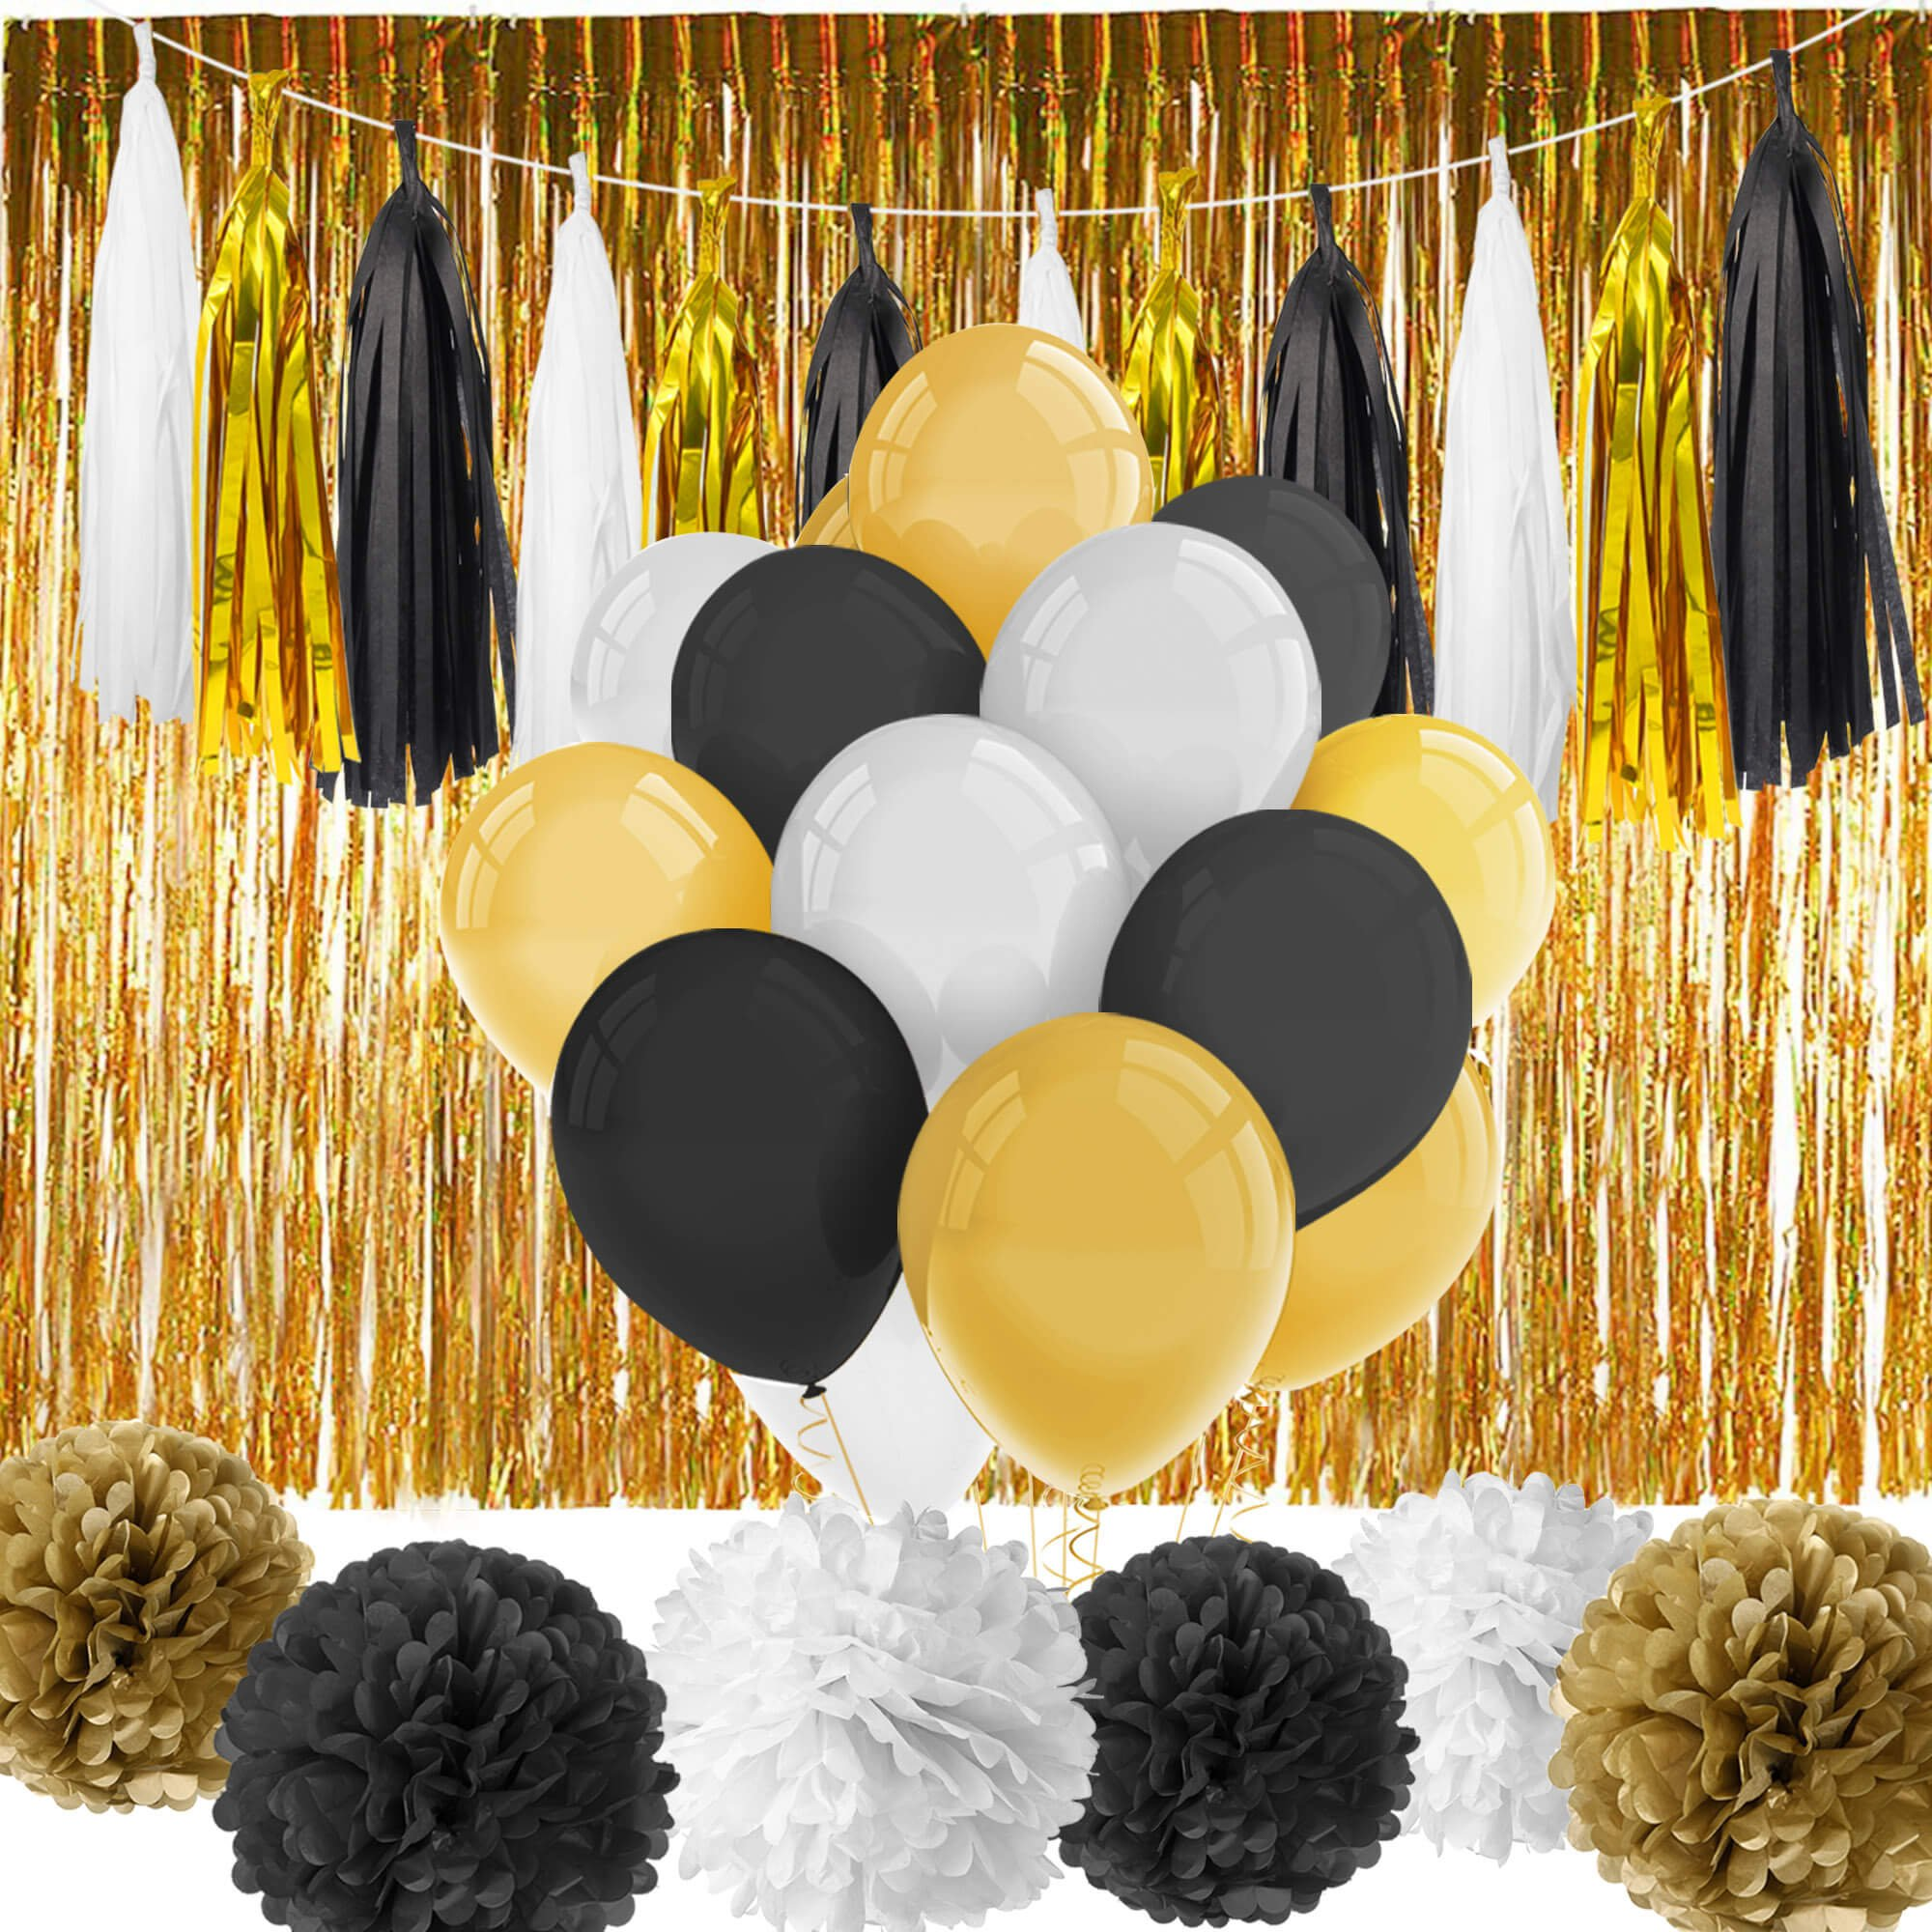 Paxcoo 52 Pcs Black and Gold Party Decorations with Balloons Tissue Pom Poms Tassel Garland for Happy New Year New Year's Eve Party Decorations by PAXCOO